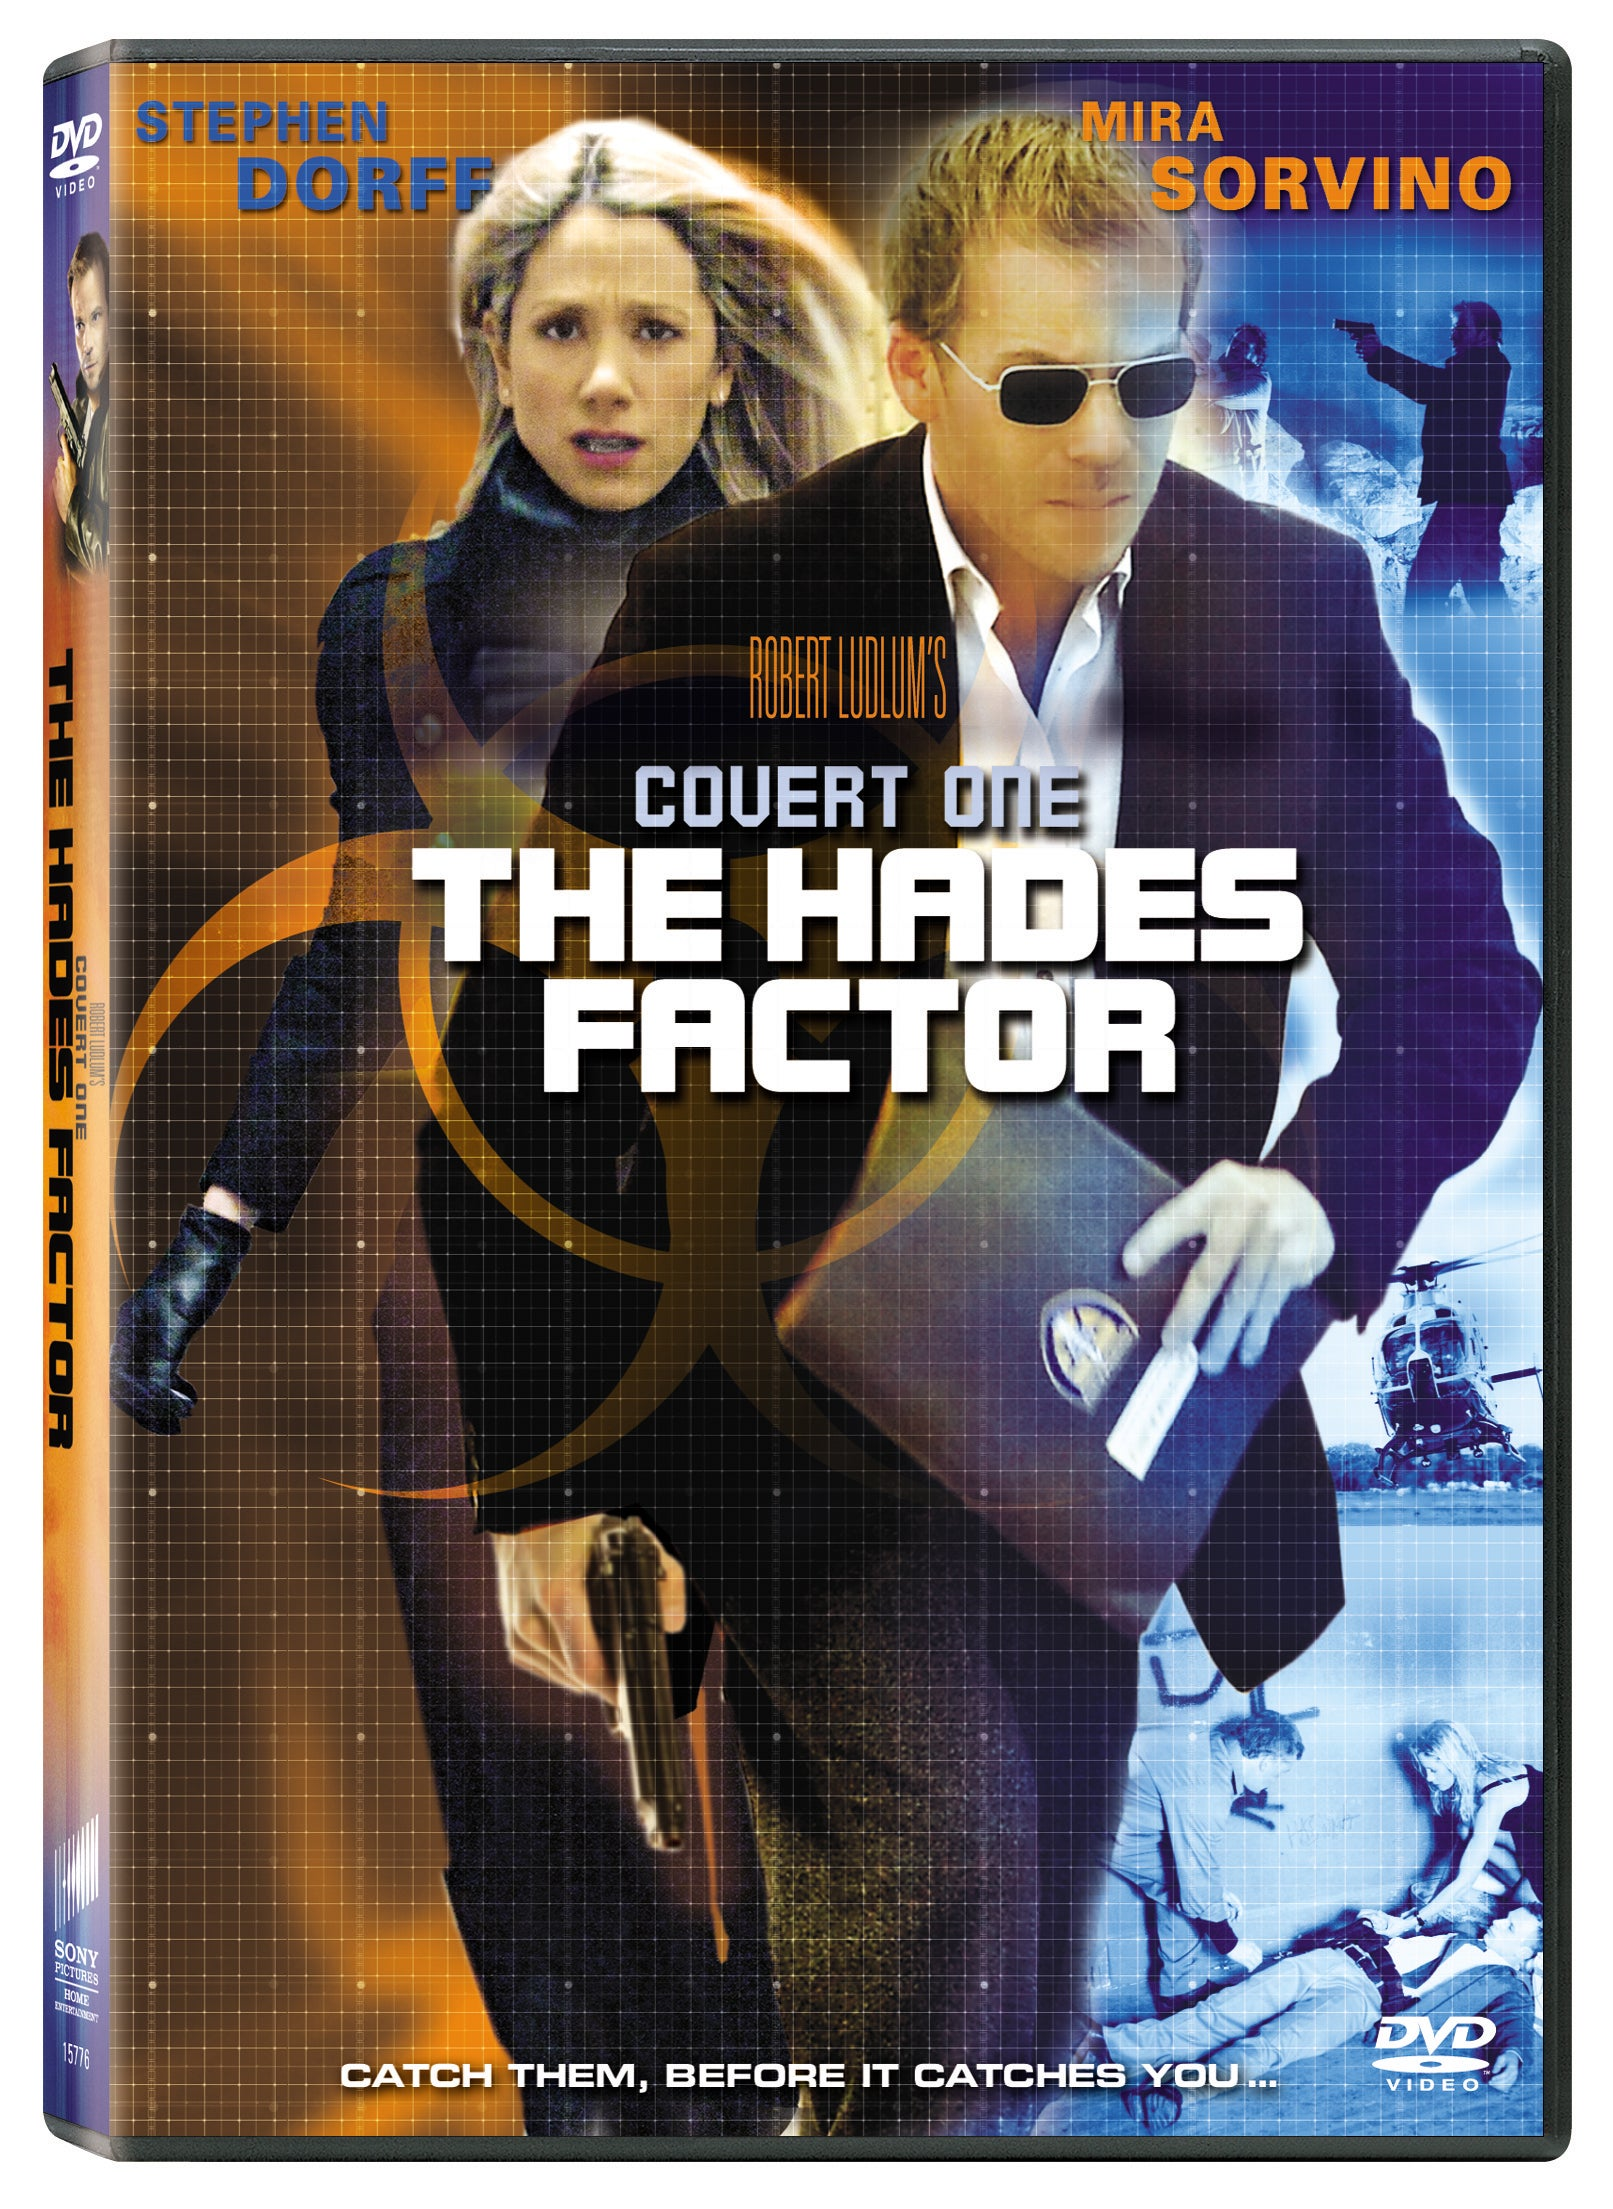 Robert Ludlum's Covert One: The Hades Factor (DVD)